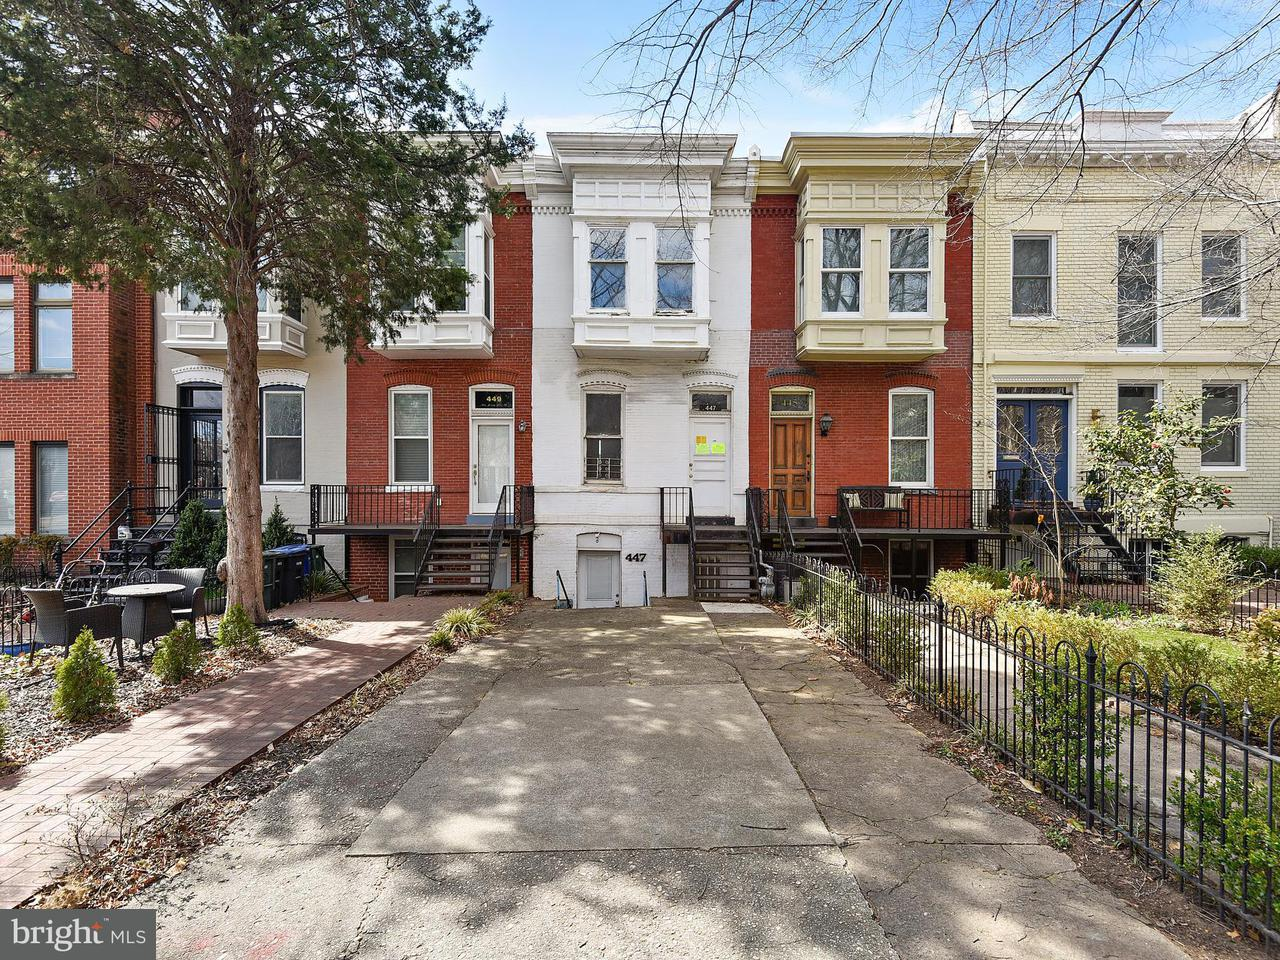 Single Family Home for Sale at 447 New Jersey Ave Se 447 New Jersey Ave Se Washington, District Of Columbia 20003 United States